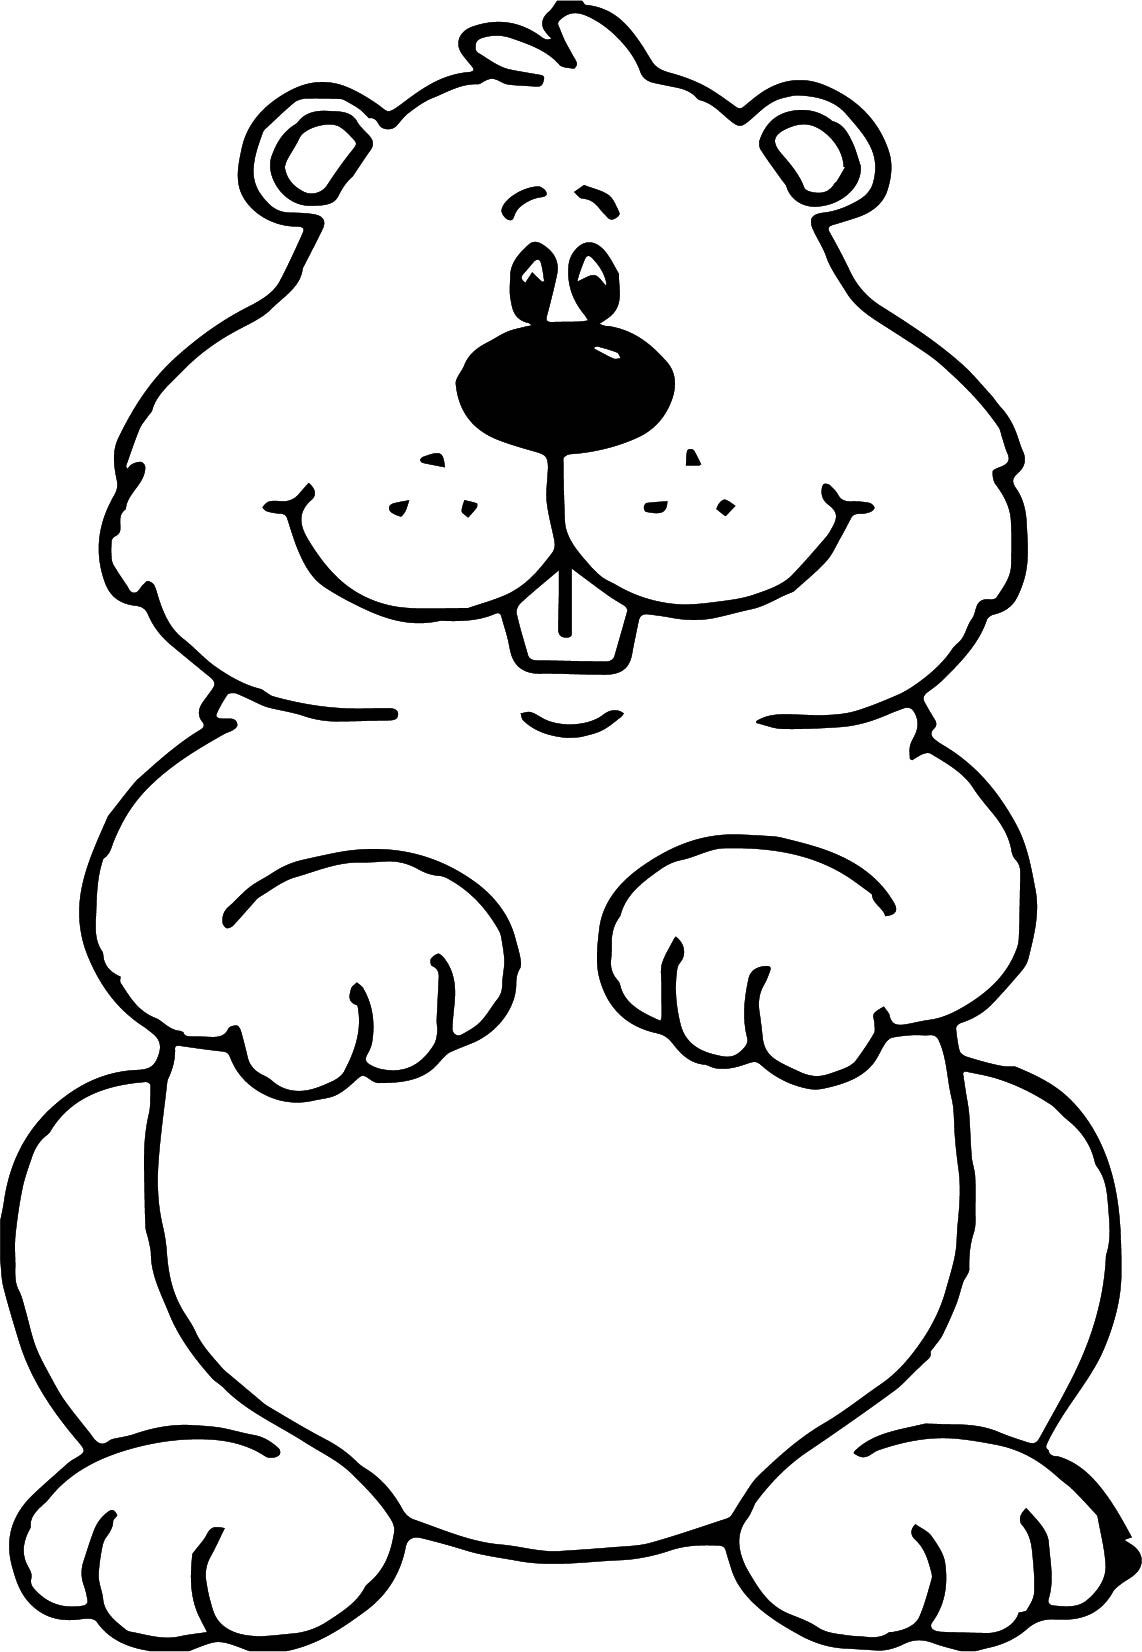 Small Groundhog Coloring Page Wecoloringpage Com In 2021 Coloring Pages Groundhog Day Bible Coloring Pages [ 1652 x 1142 Pixel ]